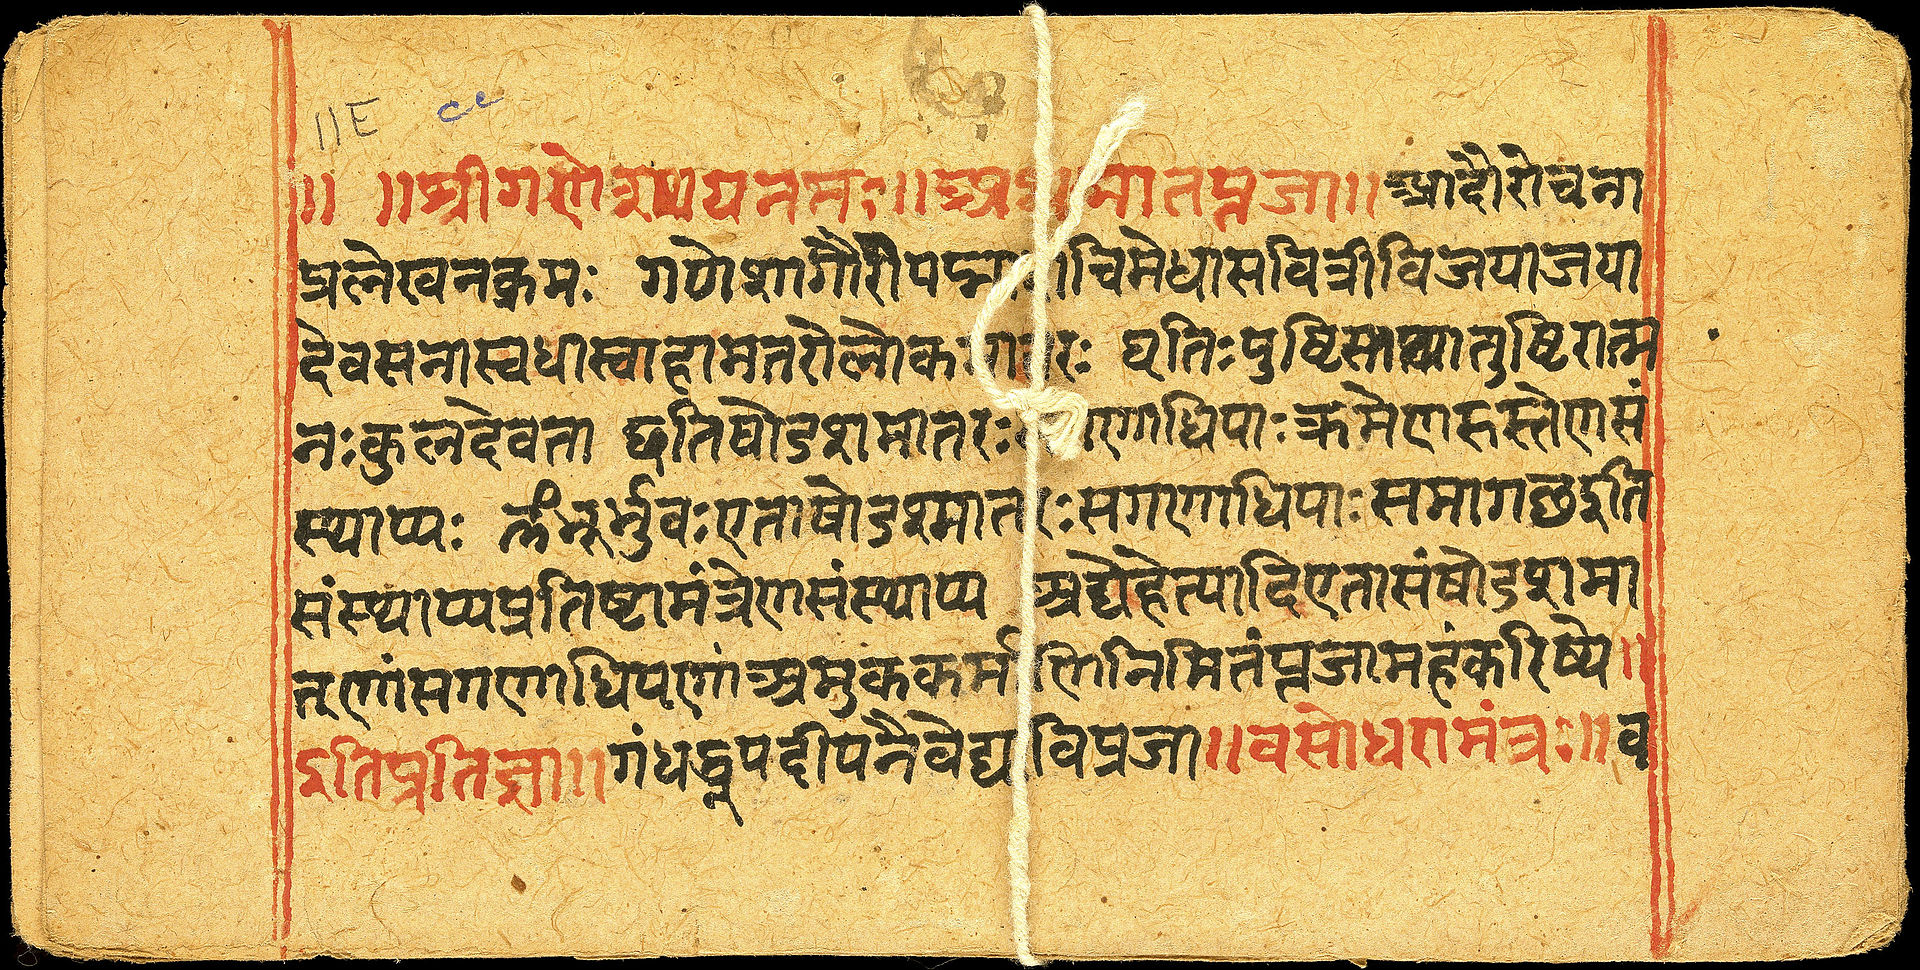 Sanskrit Of The Vedas Vs Modern Sanskrit: Hindu Texts